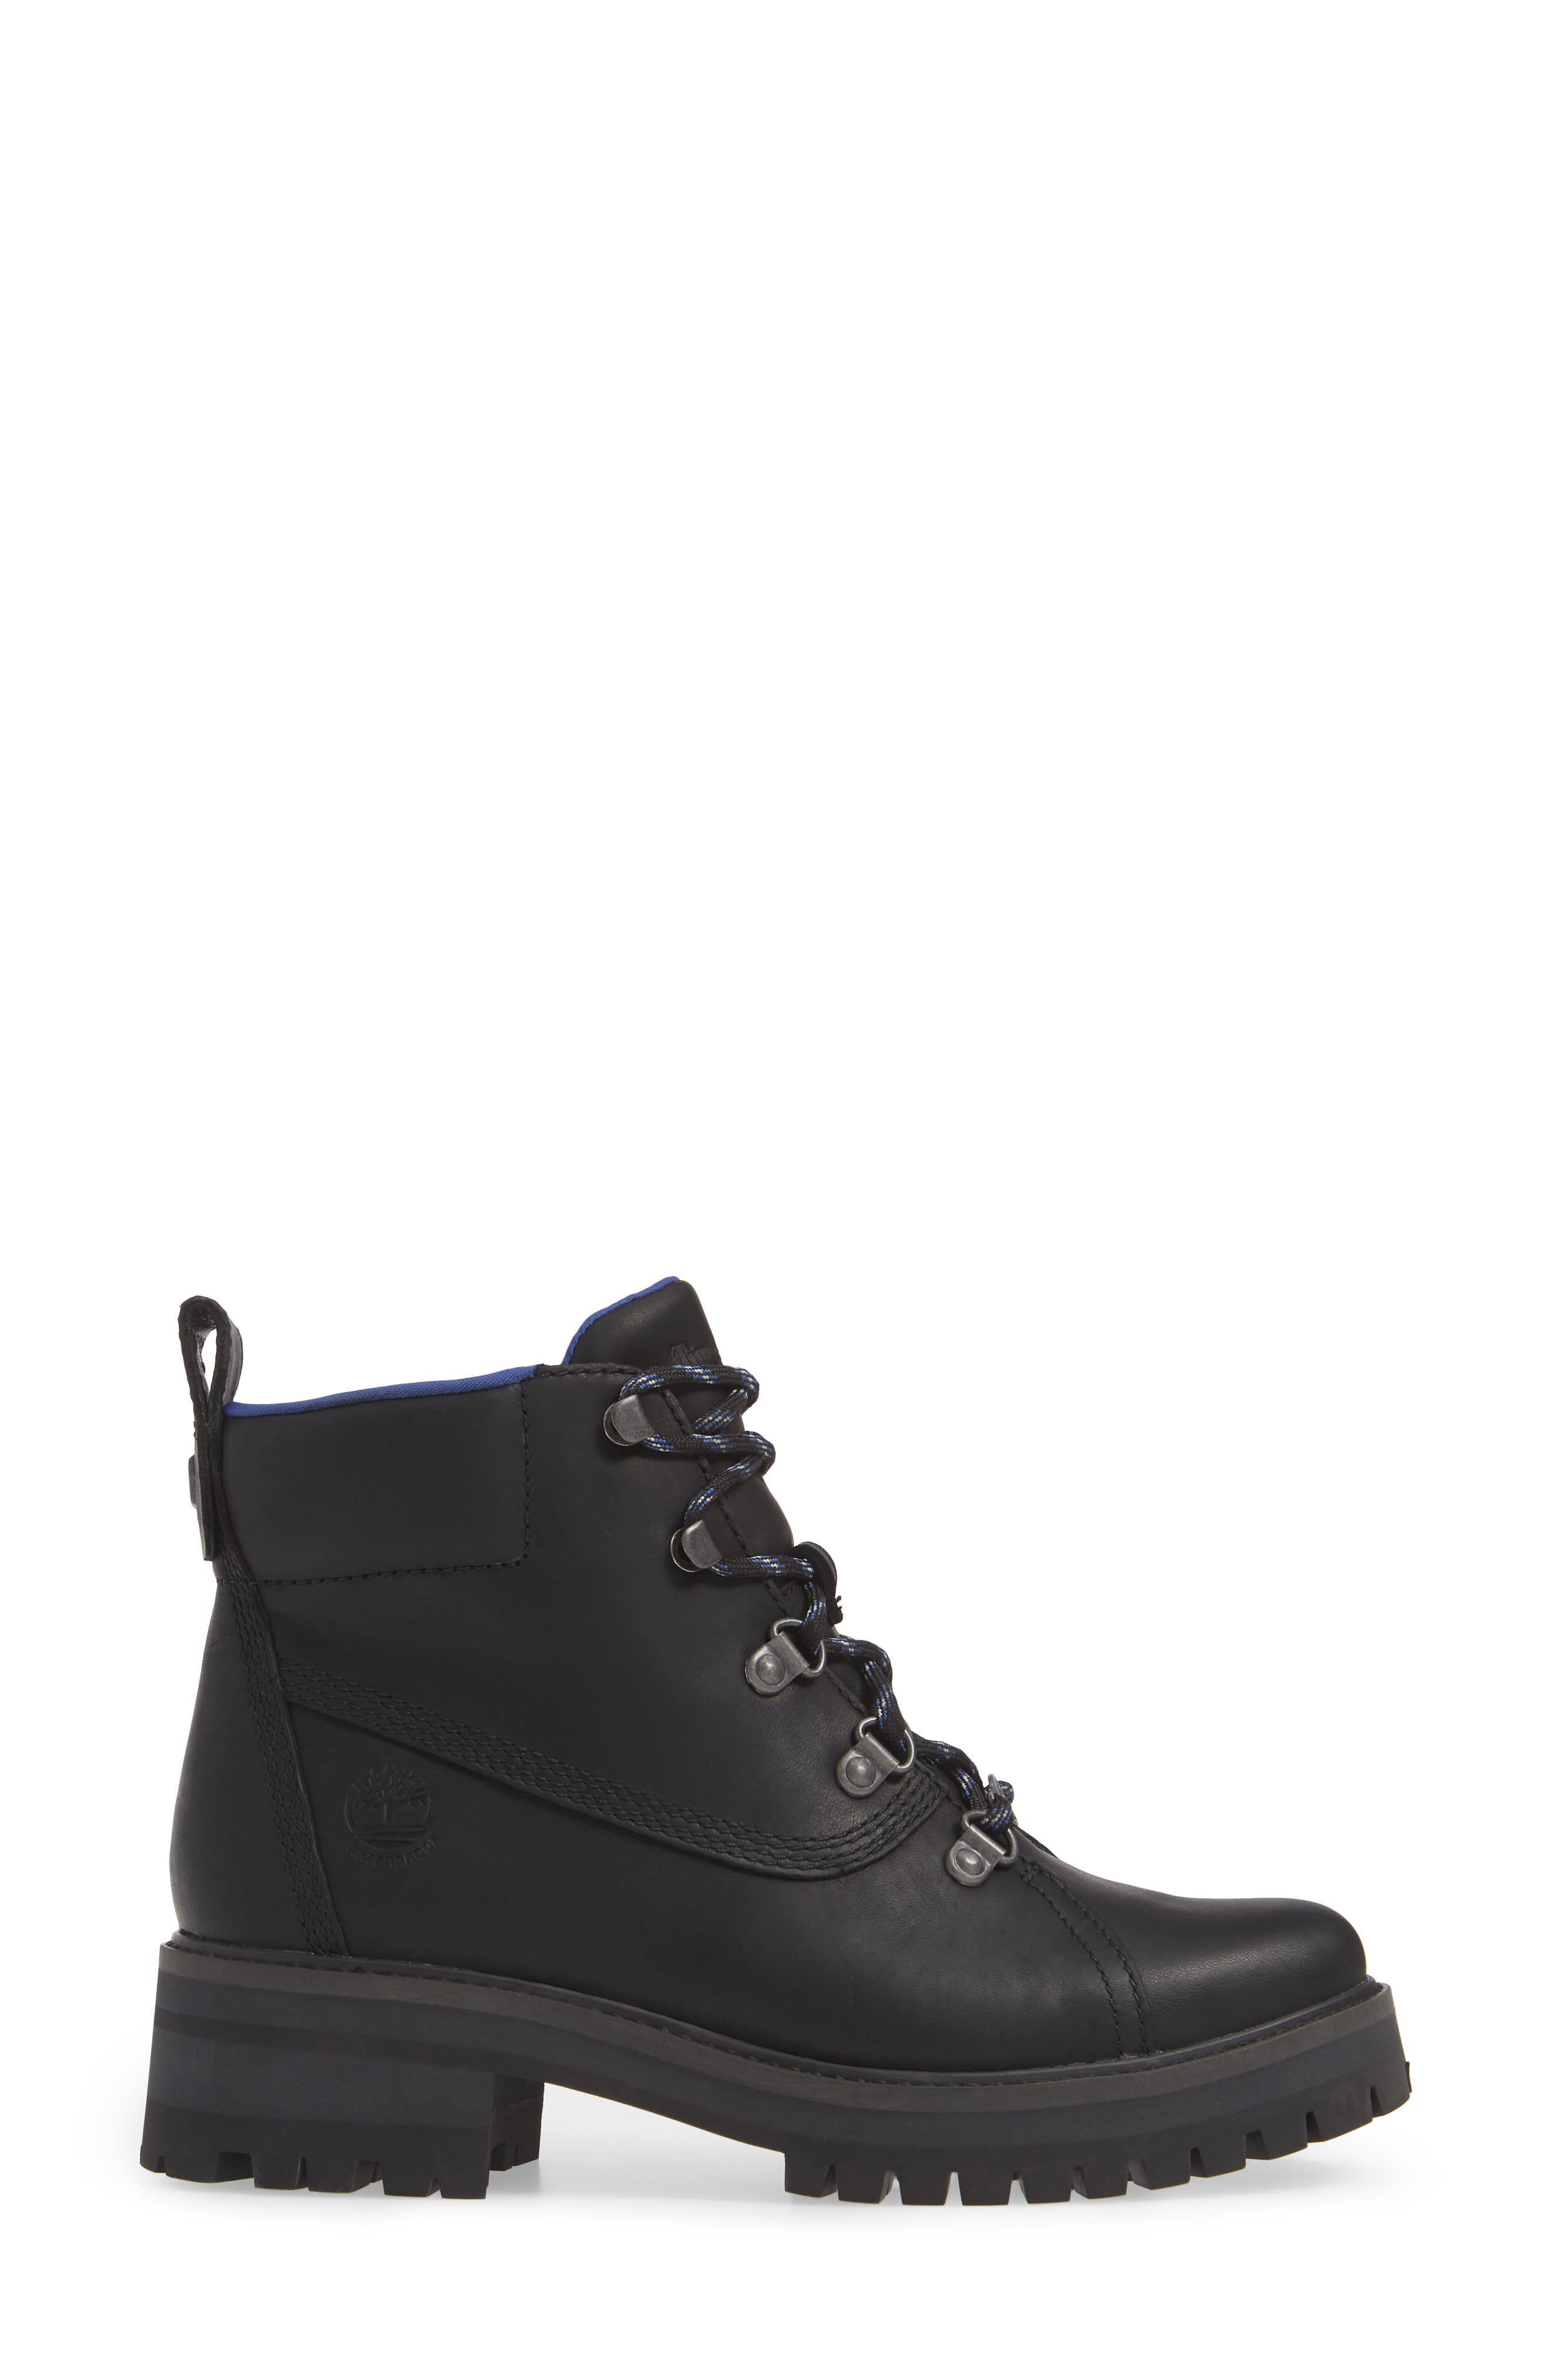 TIMBERLAND,                             Courmayeur Valley Waterproof Hiking Boot,                             Alternate thumbnail 3, color,                             BLACK NUBUCK BLACK OUT LEATHER